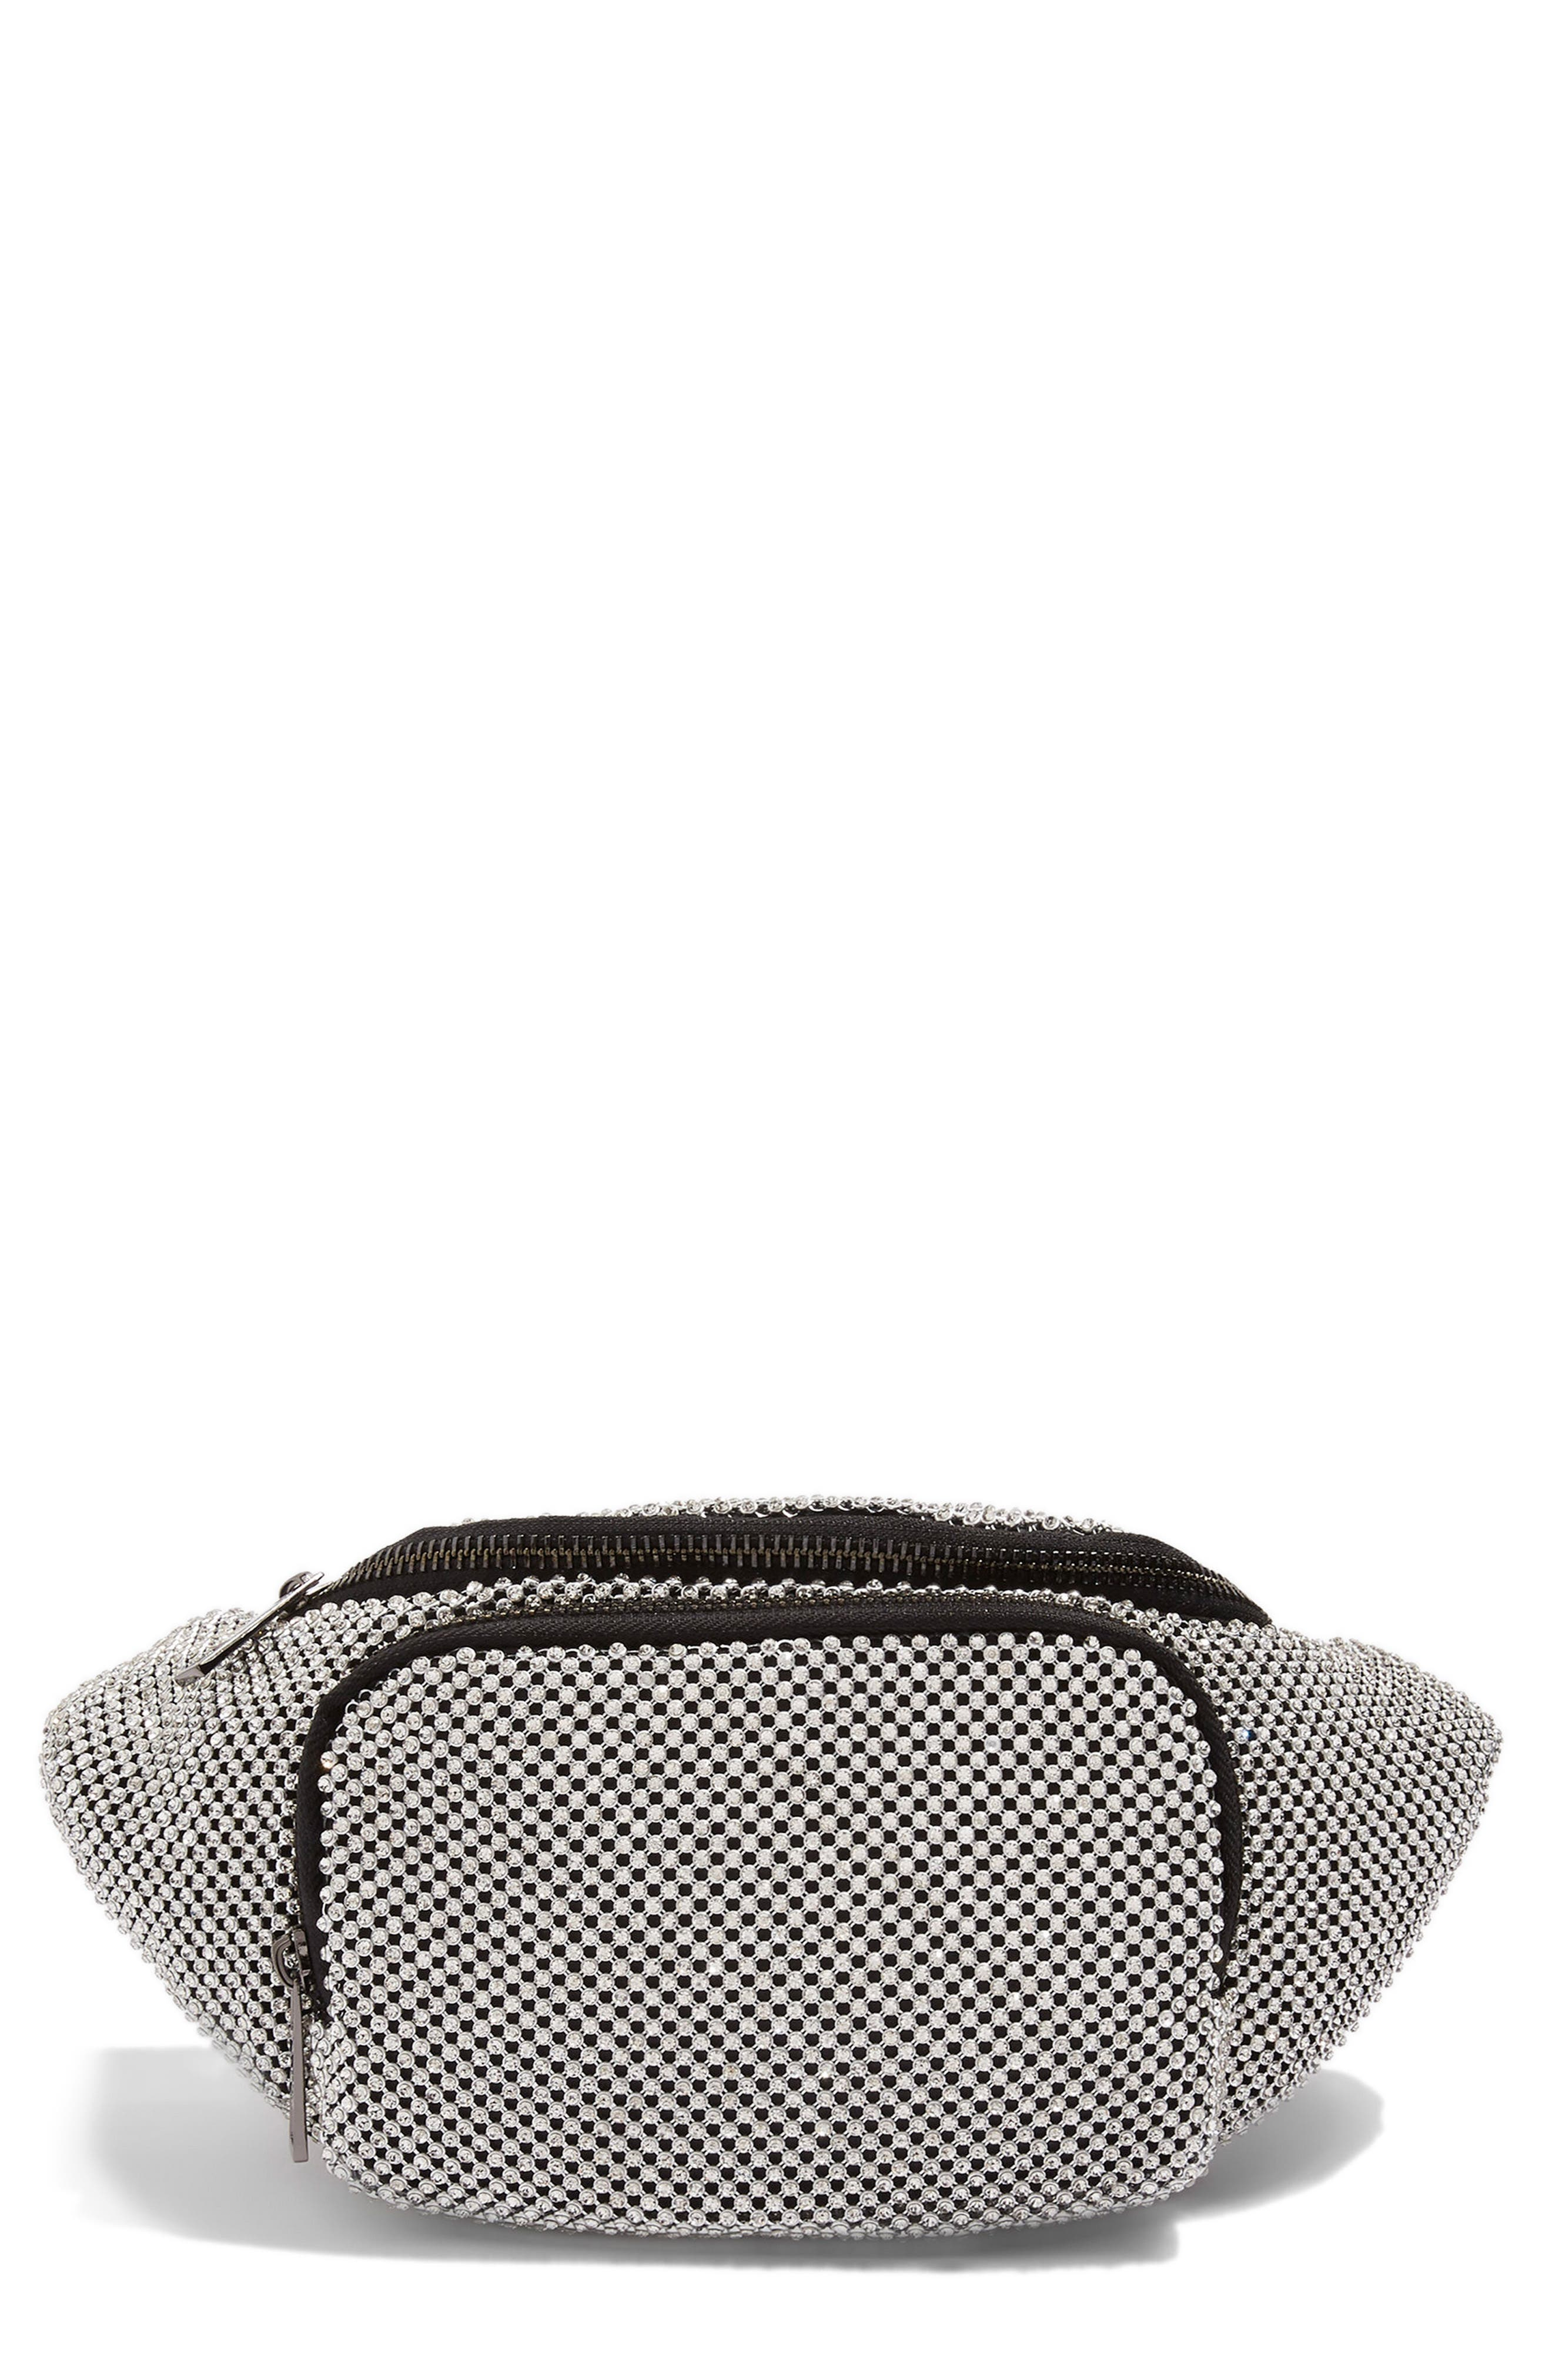 Diana Diamante Chainmail Bum Bag,                         Main,                         color, Silver Multi